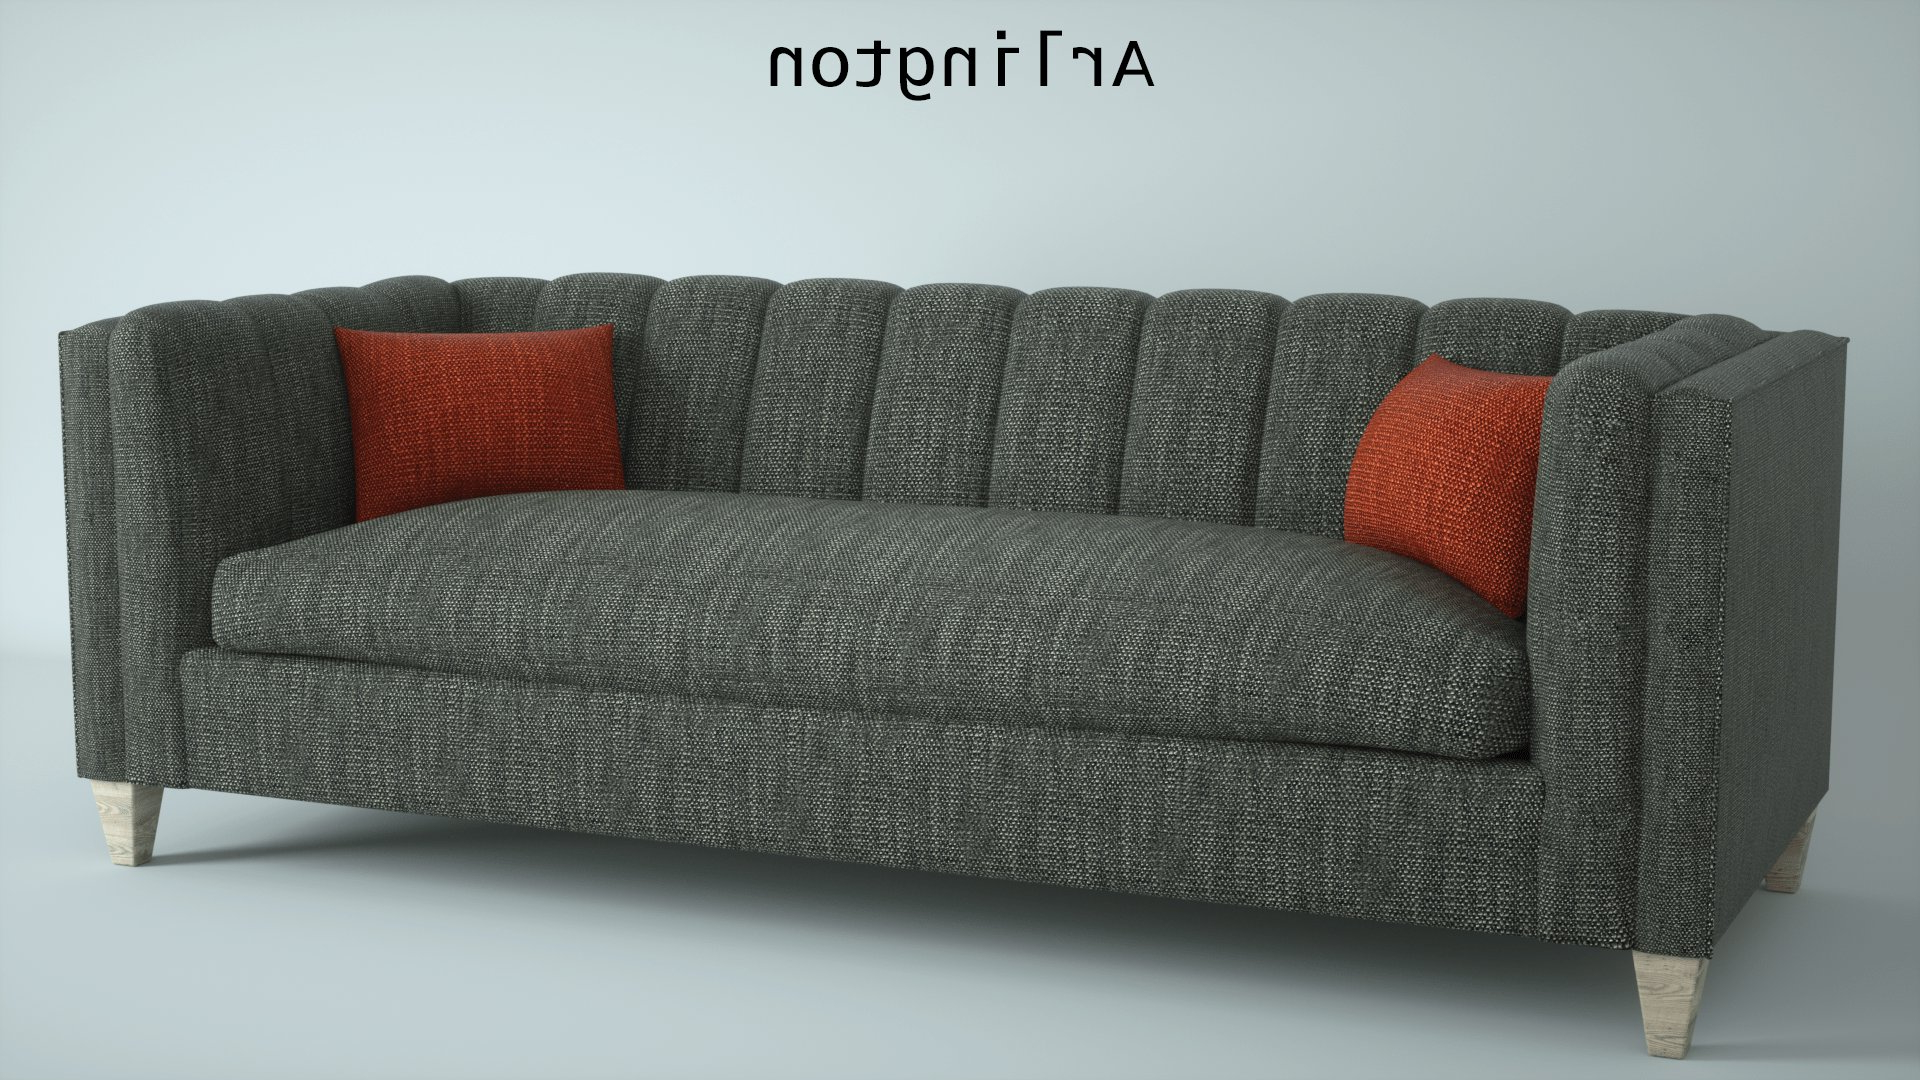 2 Piece Sectionals With Chaise Beautiful Sofas Sugar Hill Intended For Most Current Aquarius Light Grey 2 Piece Sectionals With Laf Chaise (View 1 of 20)